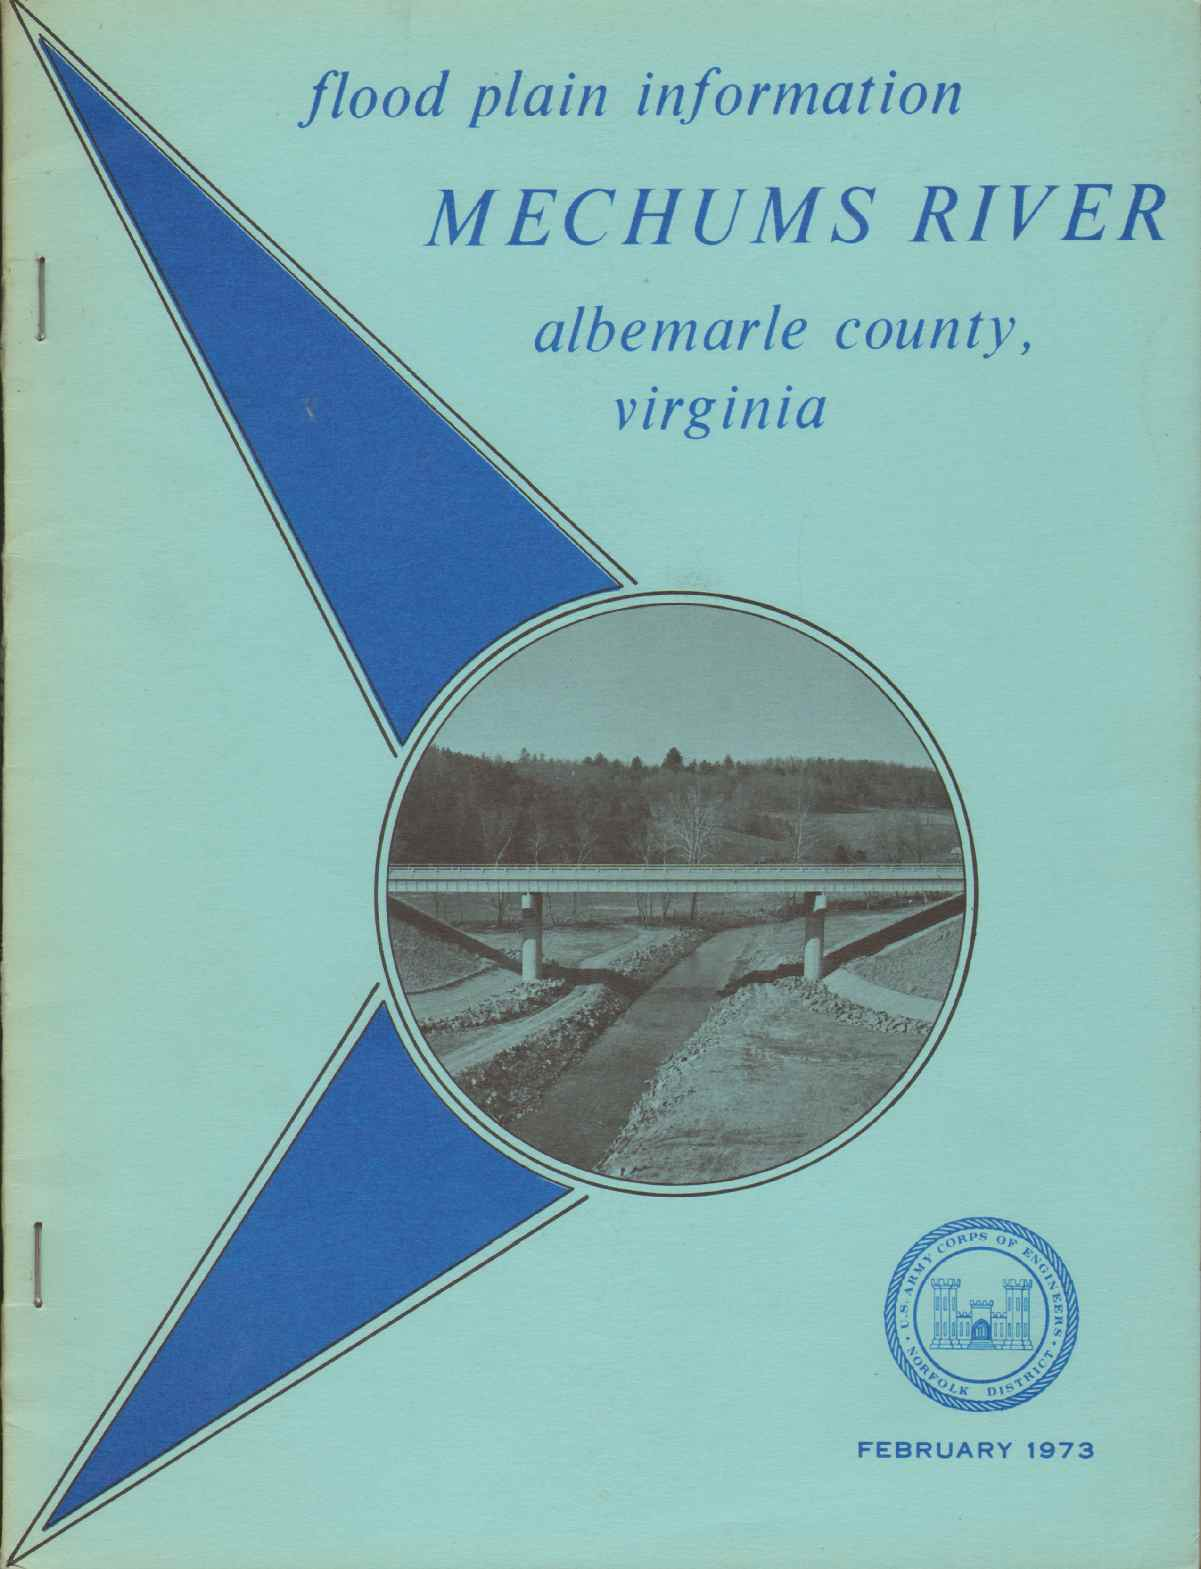 FLOOD PLAIN INFORMATION - MECHUMS RIVER Albemarle County and Charlottesville, Virginia, Army Corps Of Engineers